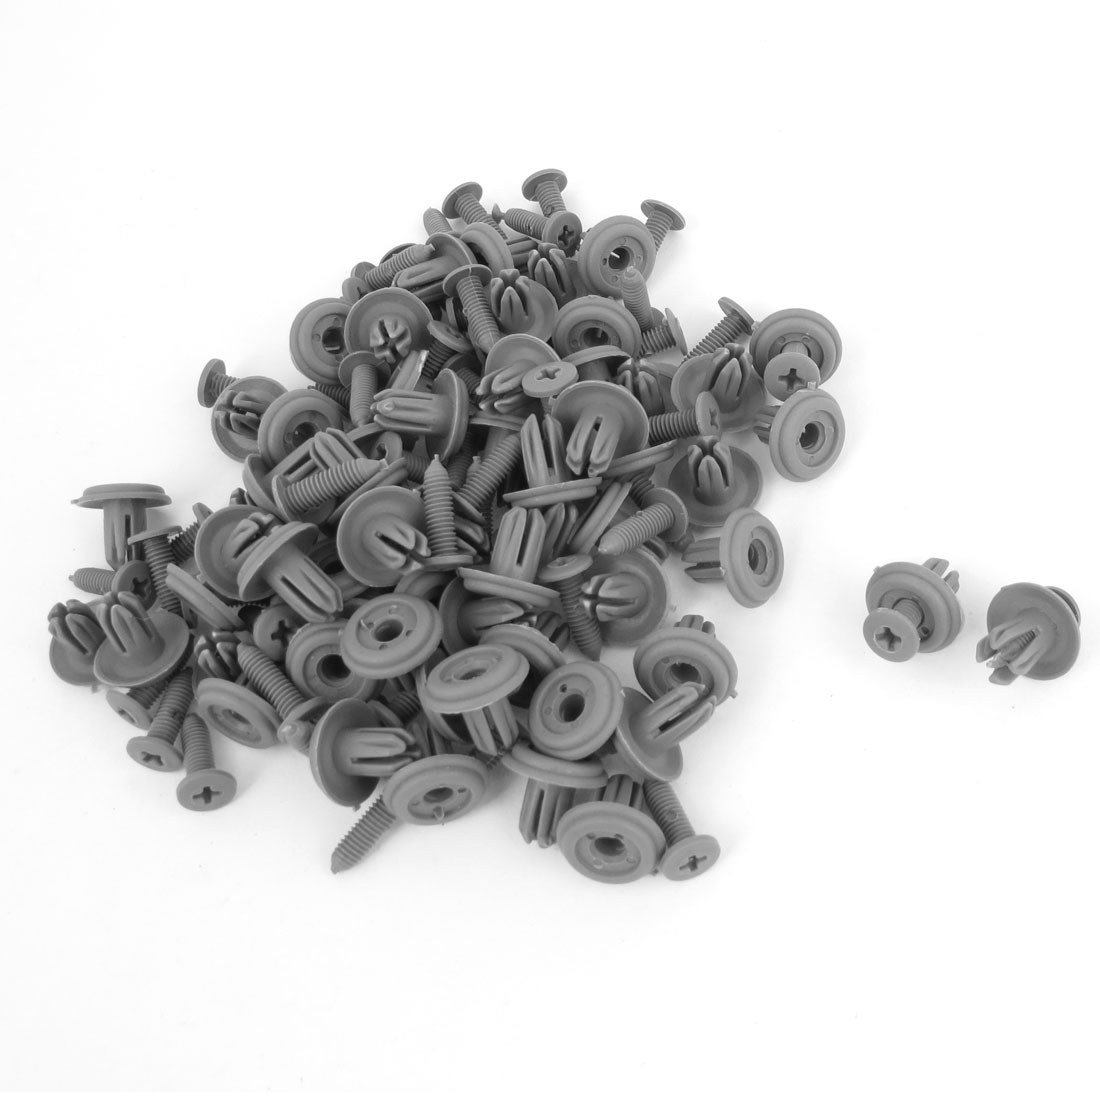 100 PCS Push in Type Plastic Rivets Fender Clips Gray for 6.3mm Hole